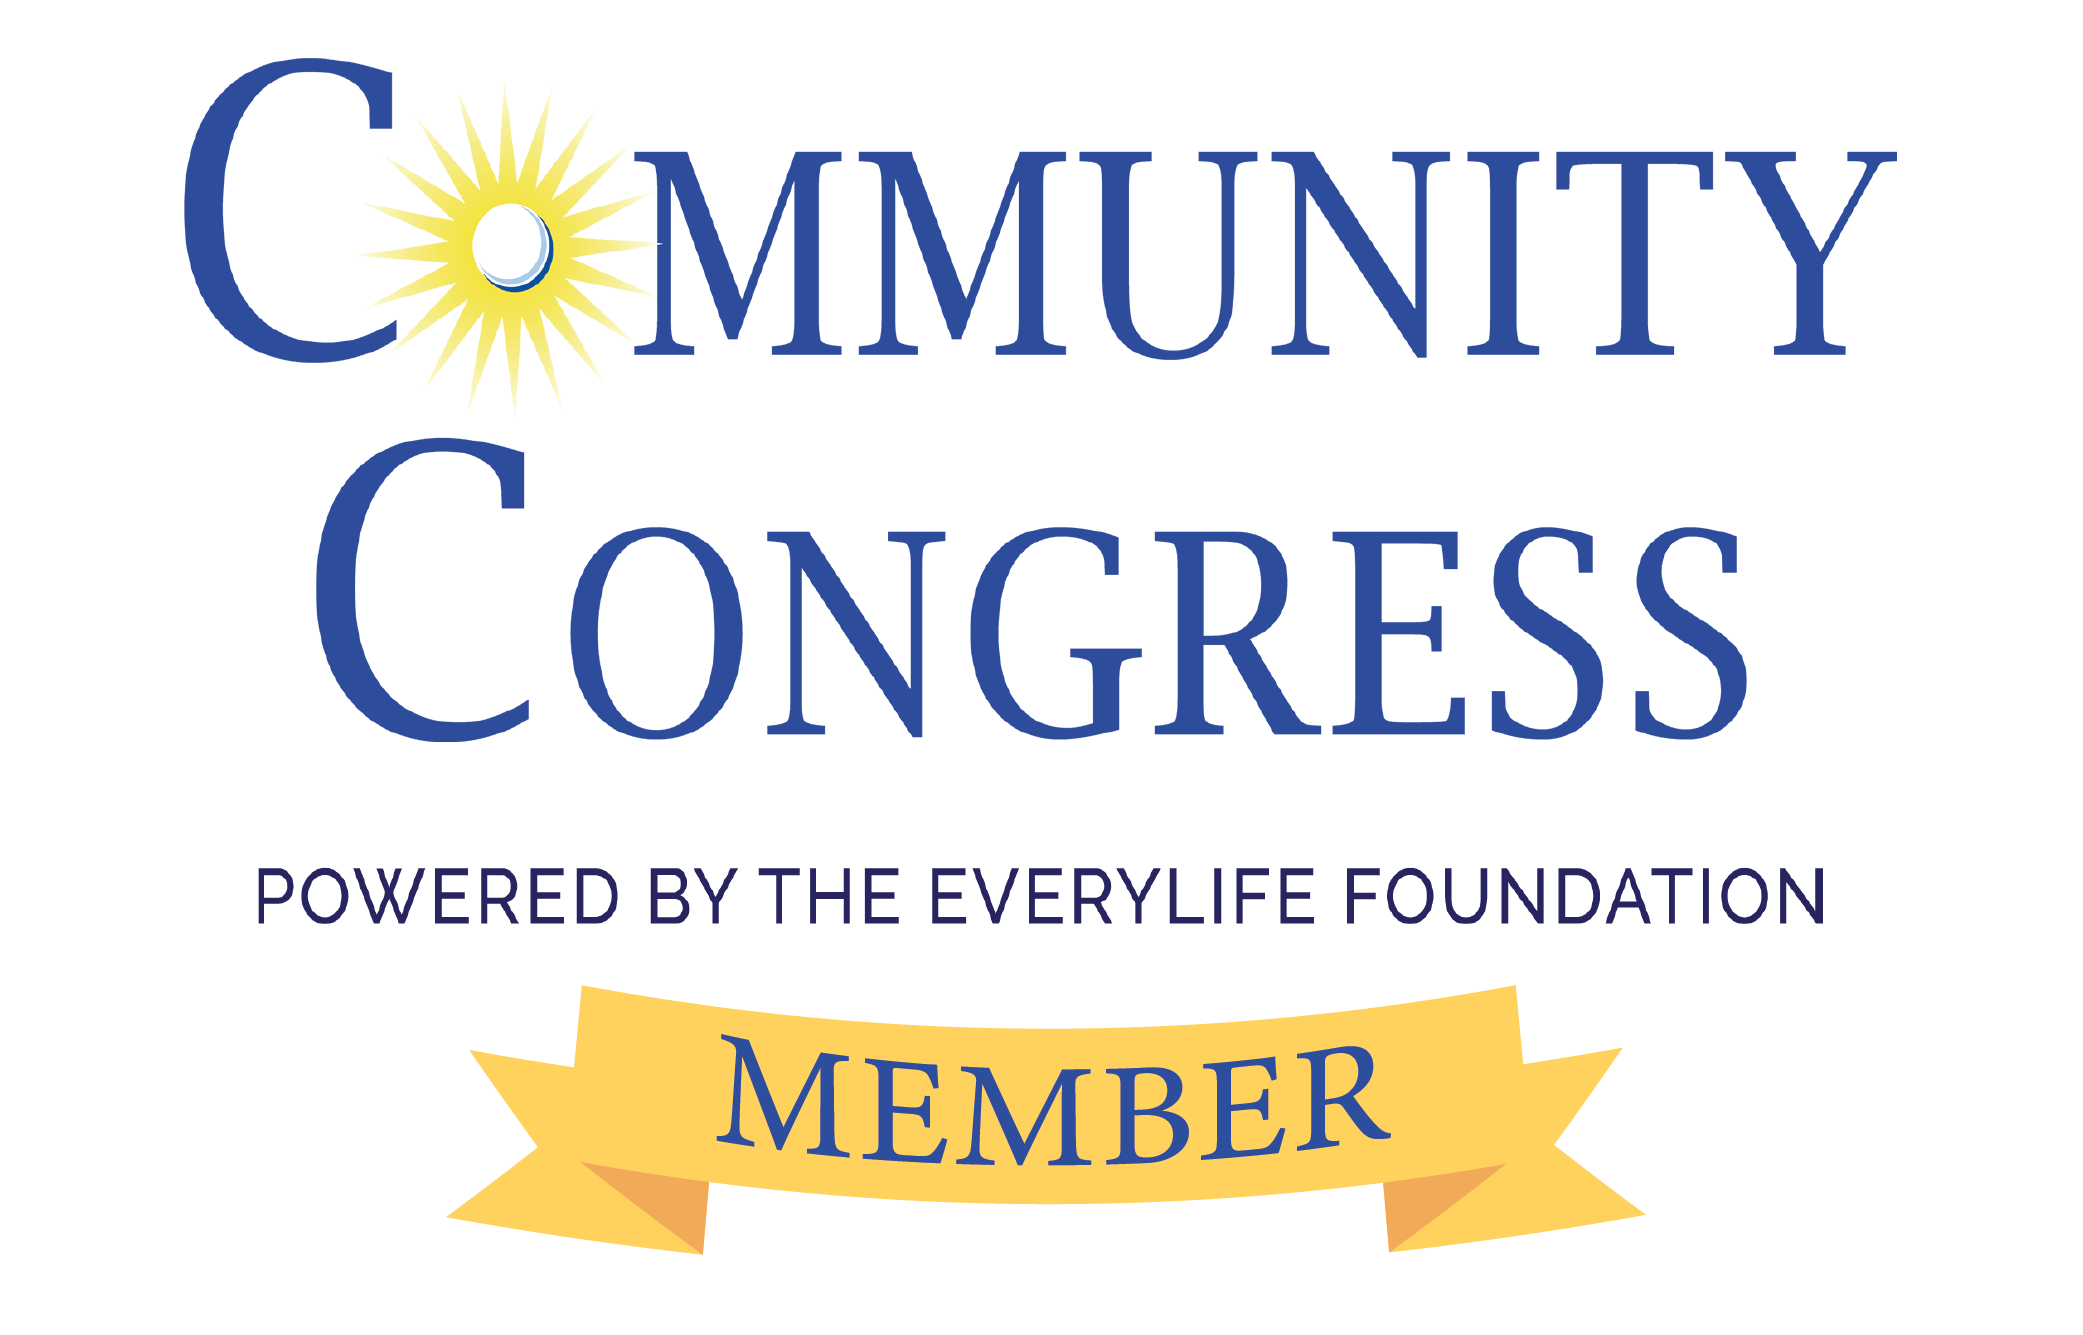 Myositis Support and Understanding is member of the Community Congress